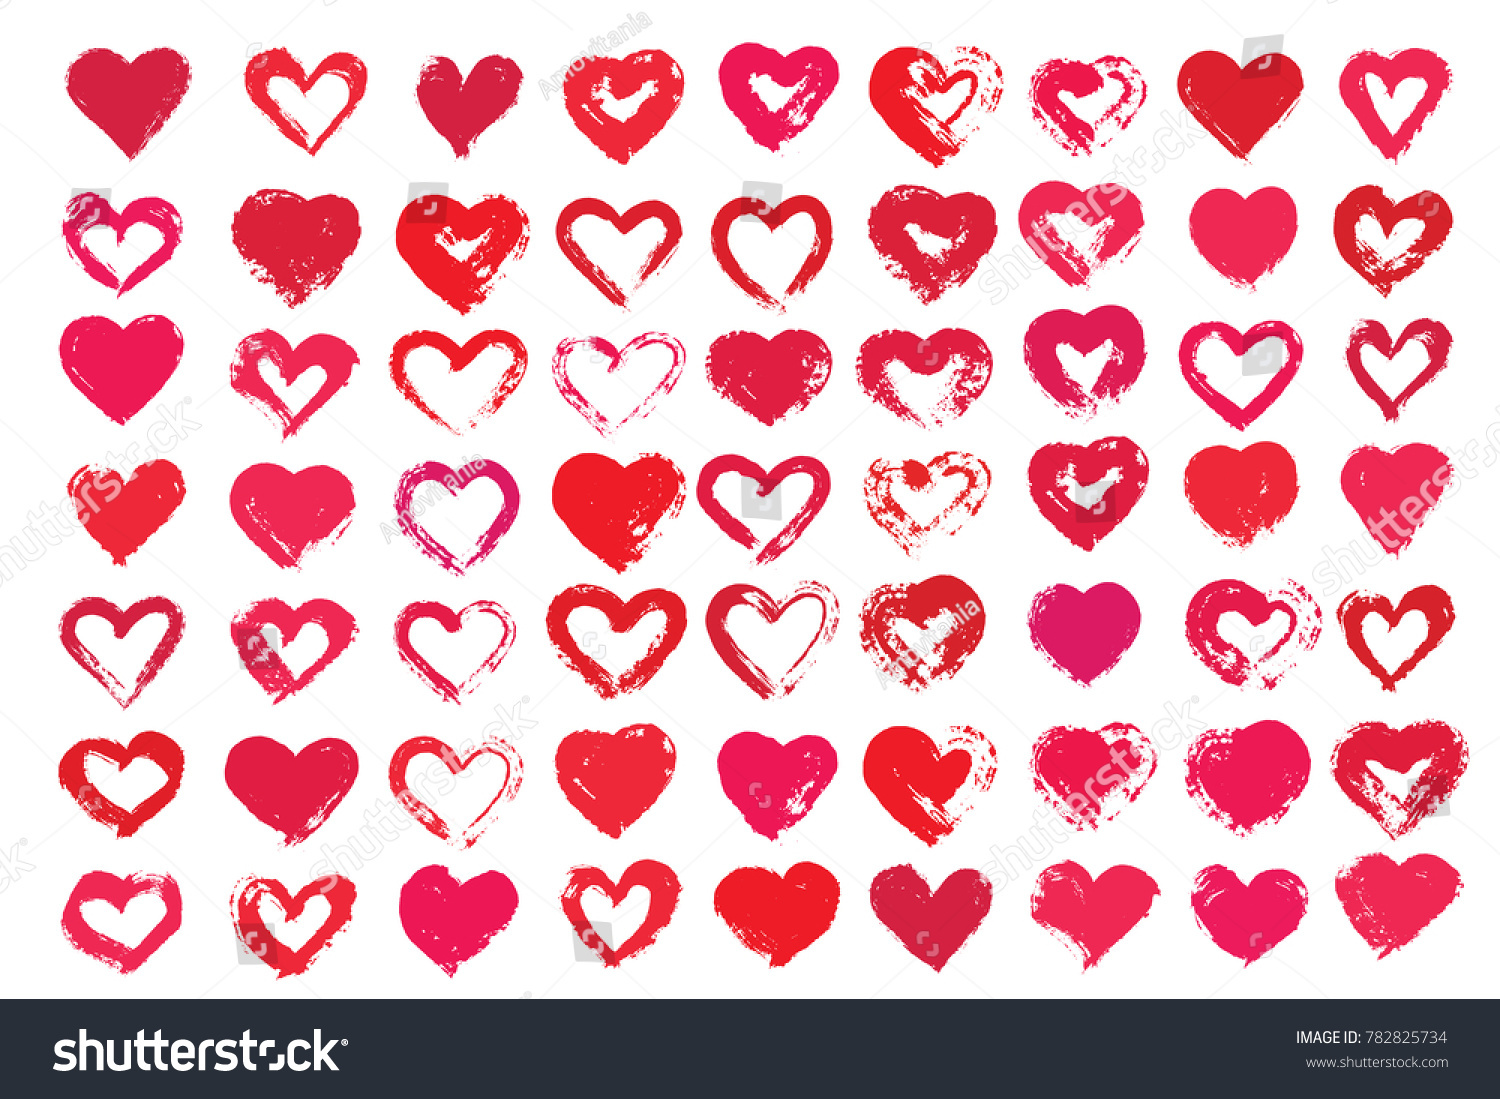 Vector Heart Shapes Painted Love Symbols Stock Vector Royalty Free